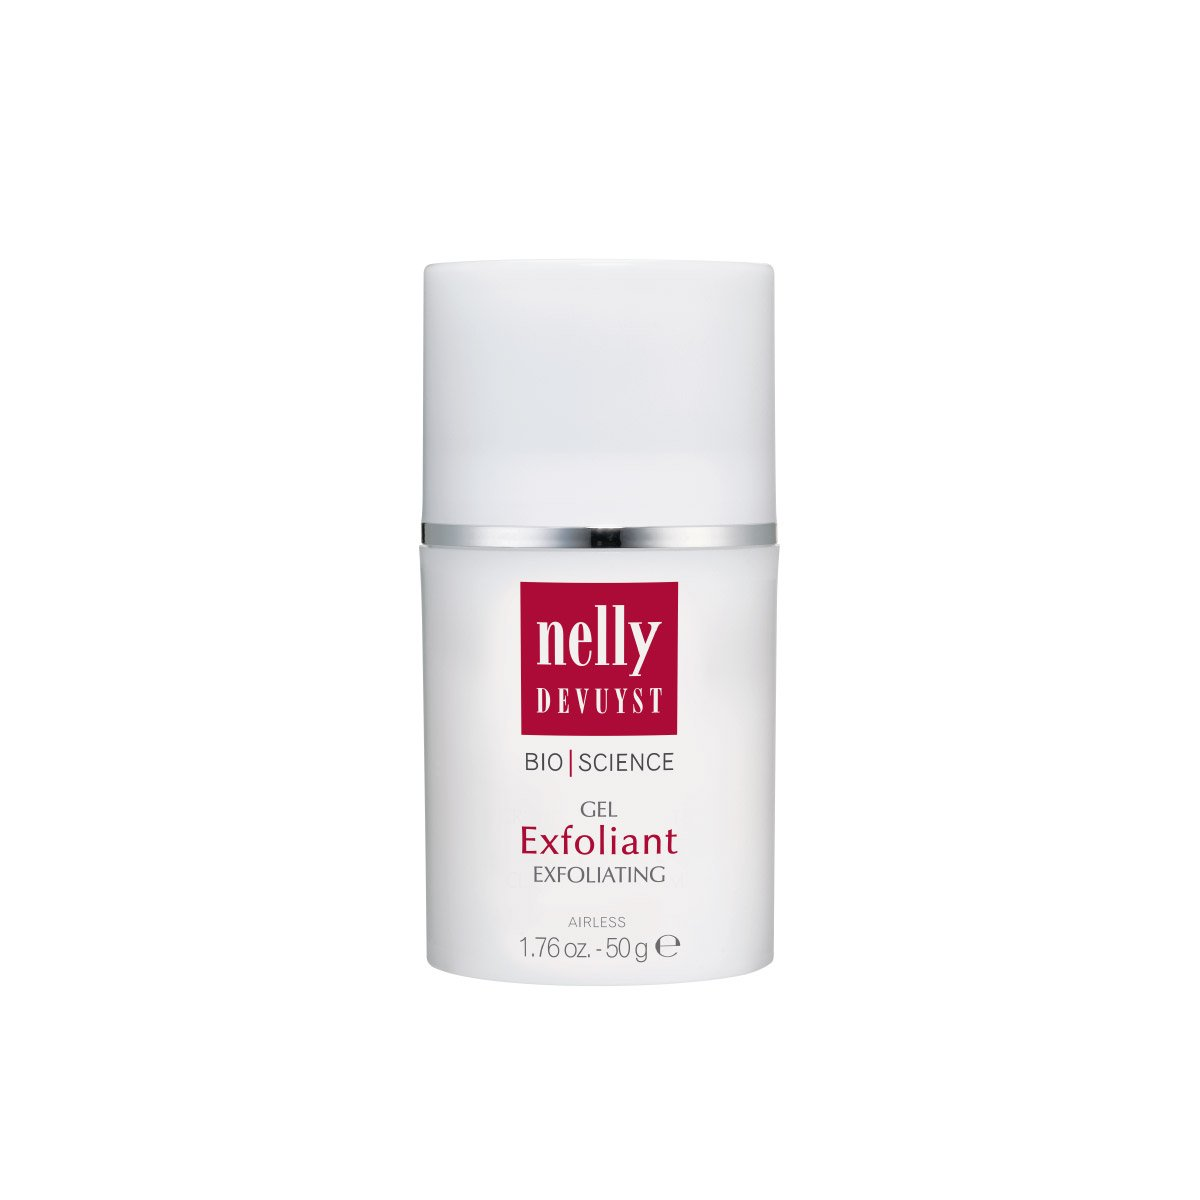 Gel Exfoliant Peaux Sensibles Bioscience - Nelly Devuyst